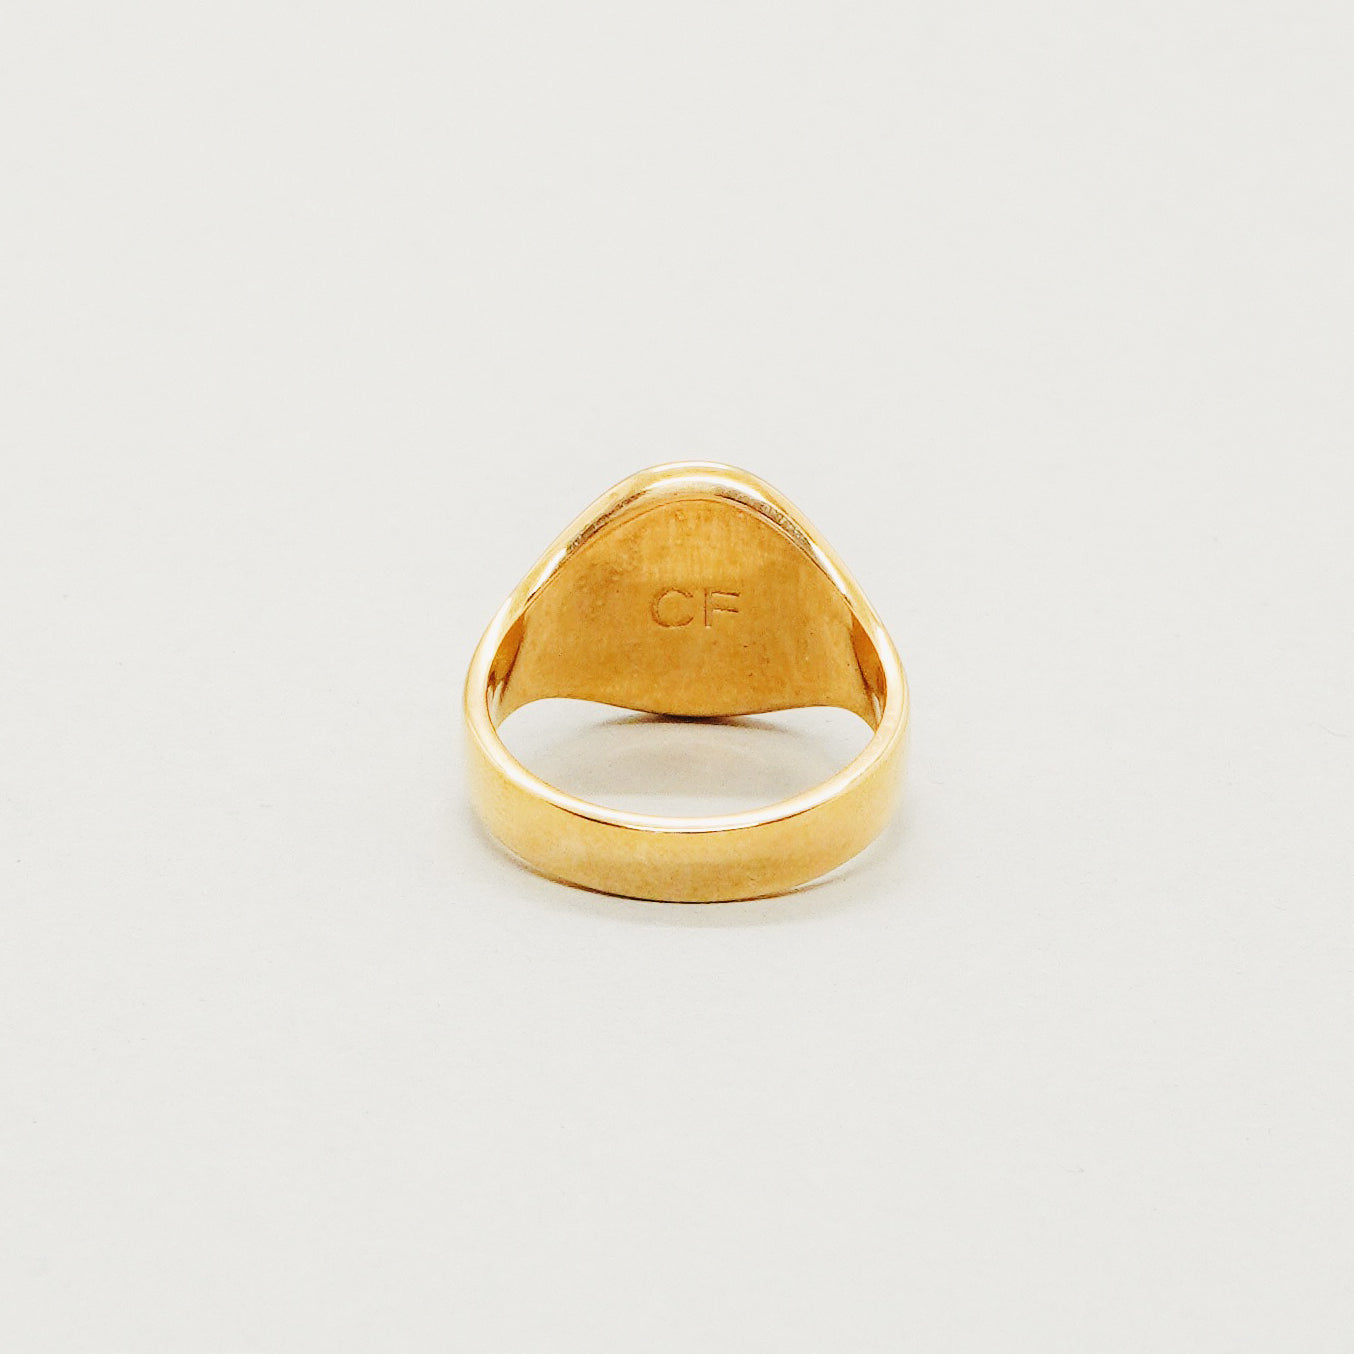 Classic Signet Ring - Gold Plated 925 Sterling Silver